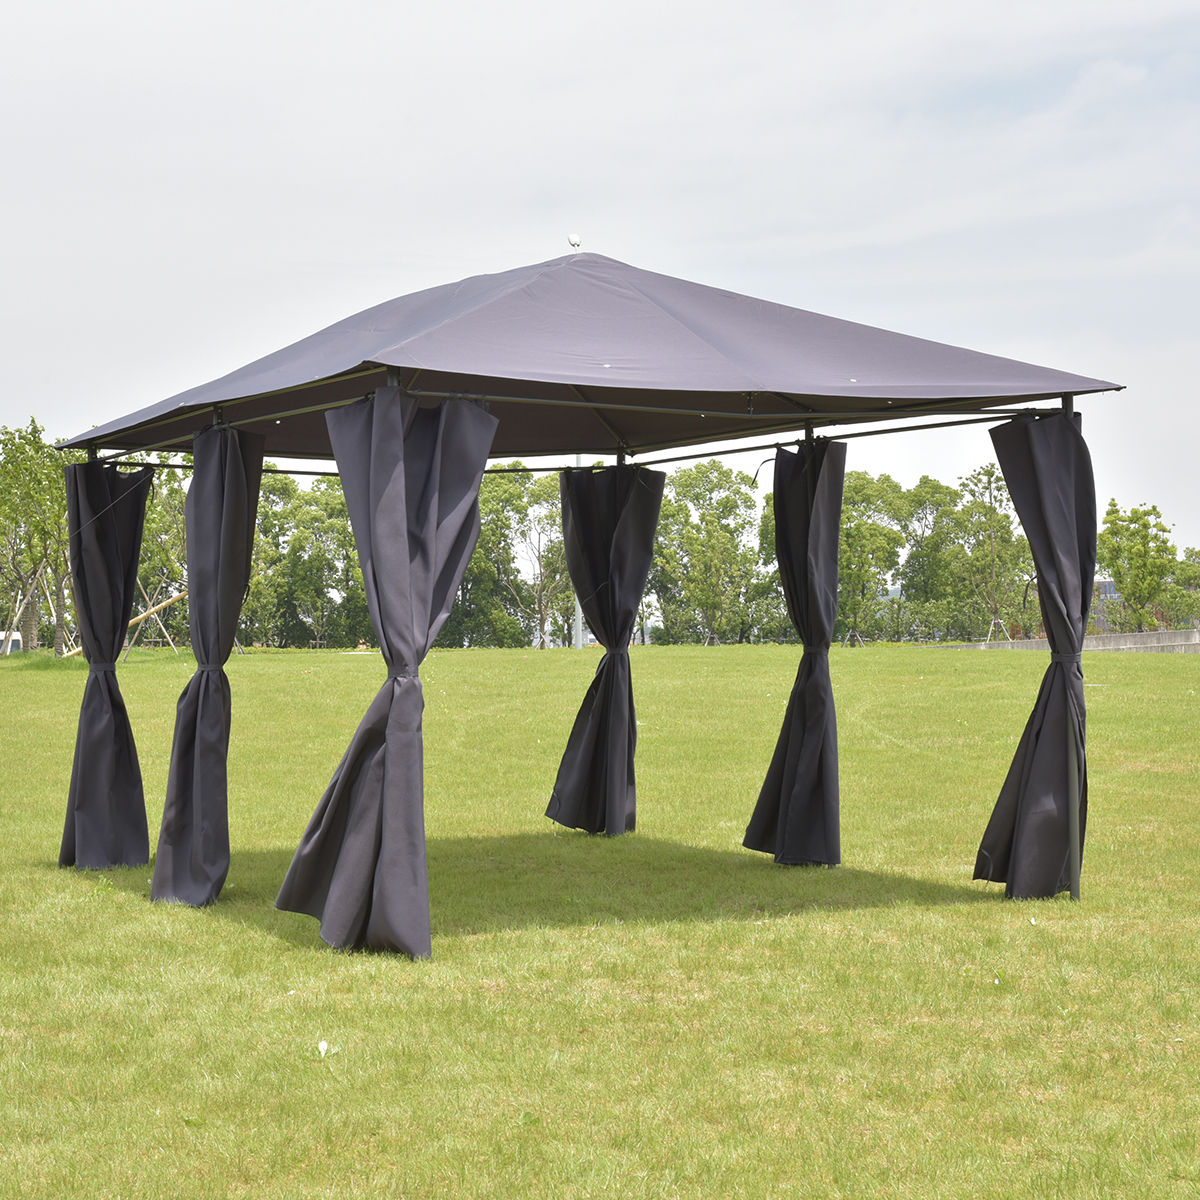 Costway Outdoor 10'x13' Gazebo Canopy Tent Shelter Awning Steel Frame W Walls Gray by Costway